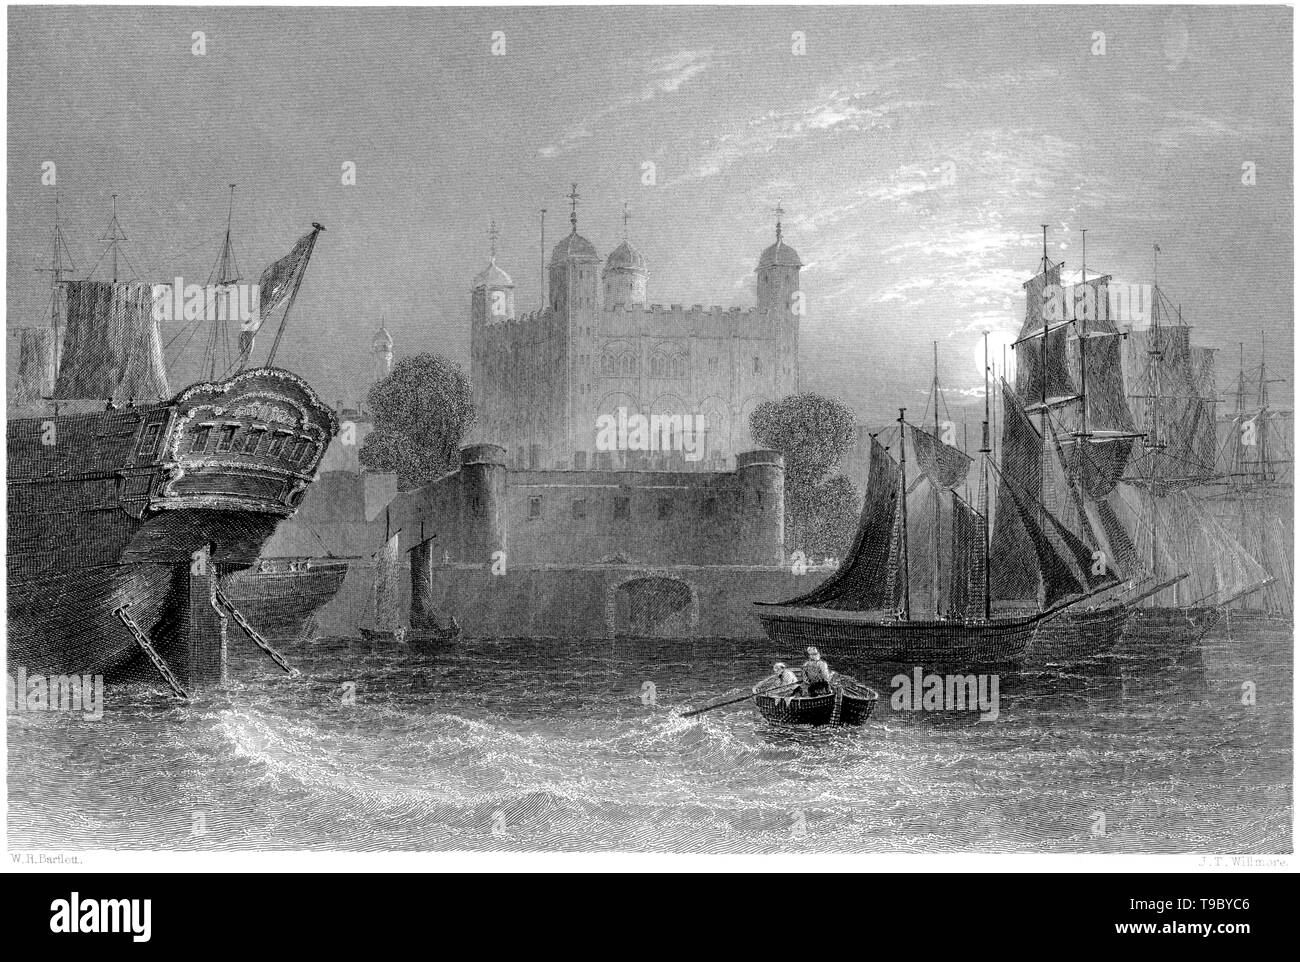 An engraving of the Tower of London scanned at high resolution from a book published in 1842. Believed copyright free. - Stock Image